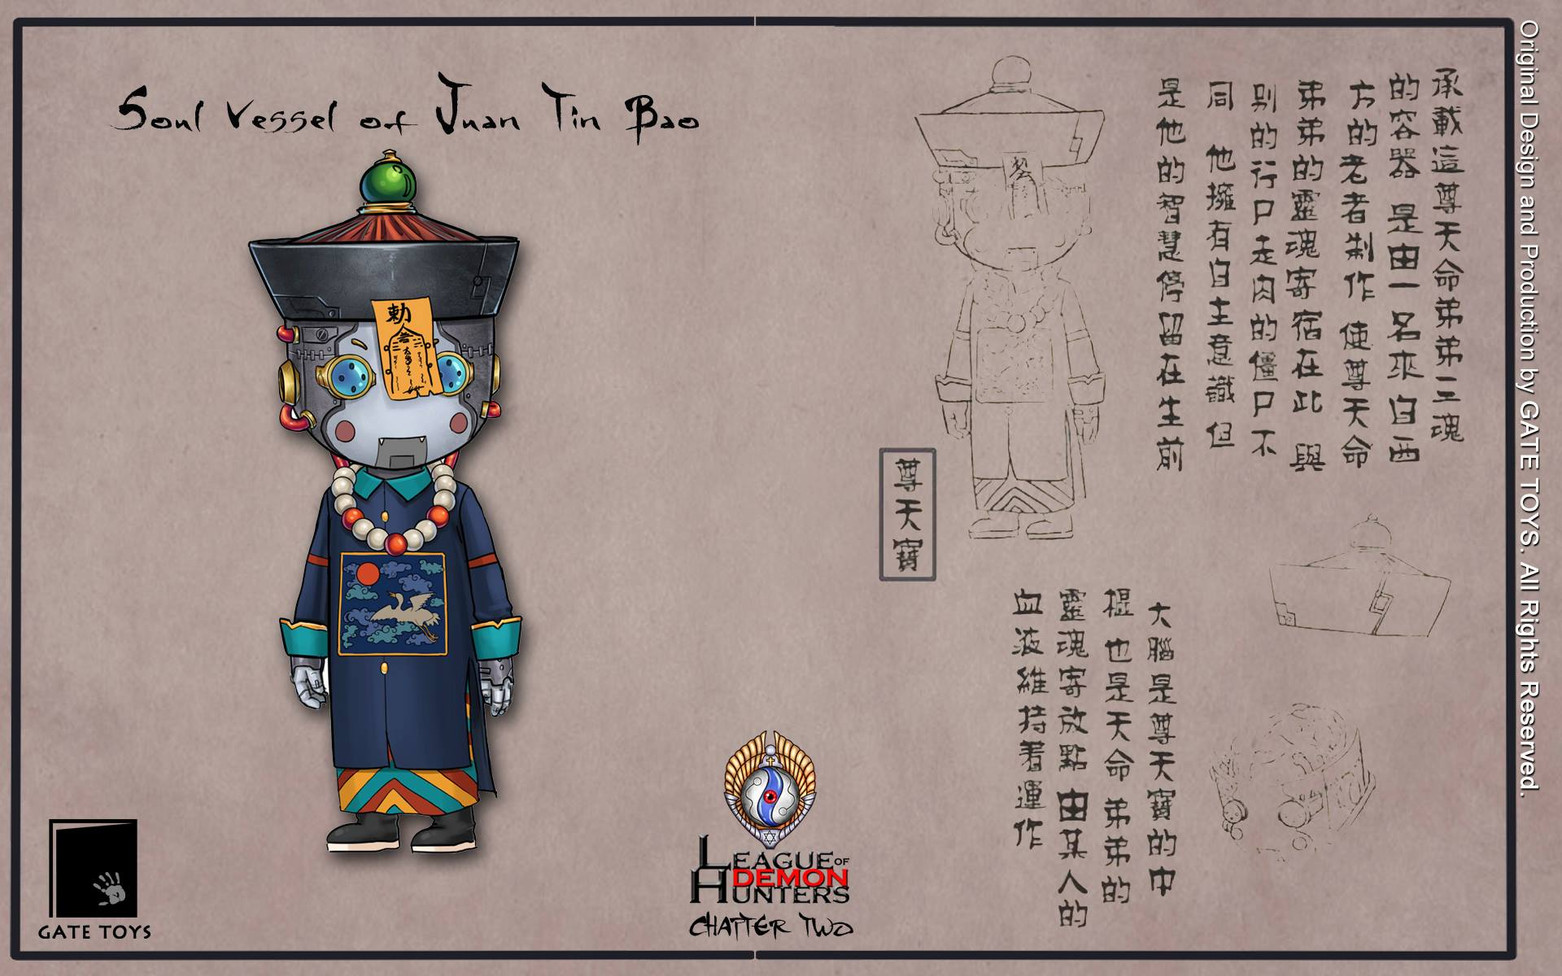 Juan Tin Bao (Tin Bao means heavenly treasure), a vessel created by an ancient from the west, the vessel contains the 3 of 7 spirits of Juan Tin Ming's little brother. Different from other walking dead, Tin Bao has his own consciousness and free will, however, his won't age pass the point when his other spirits were taken by the demons.